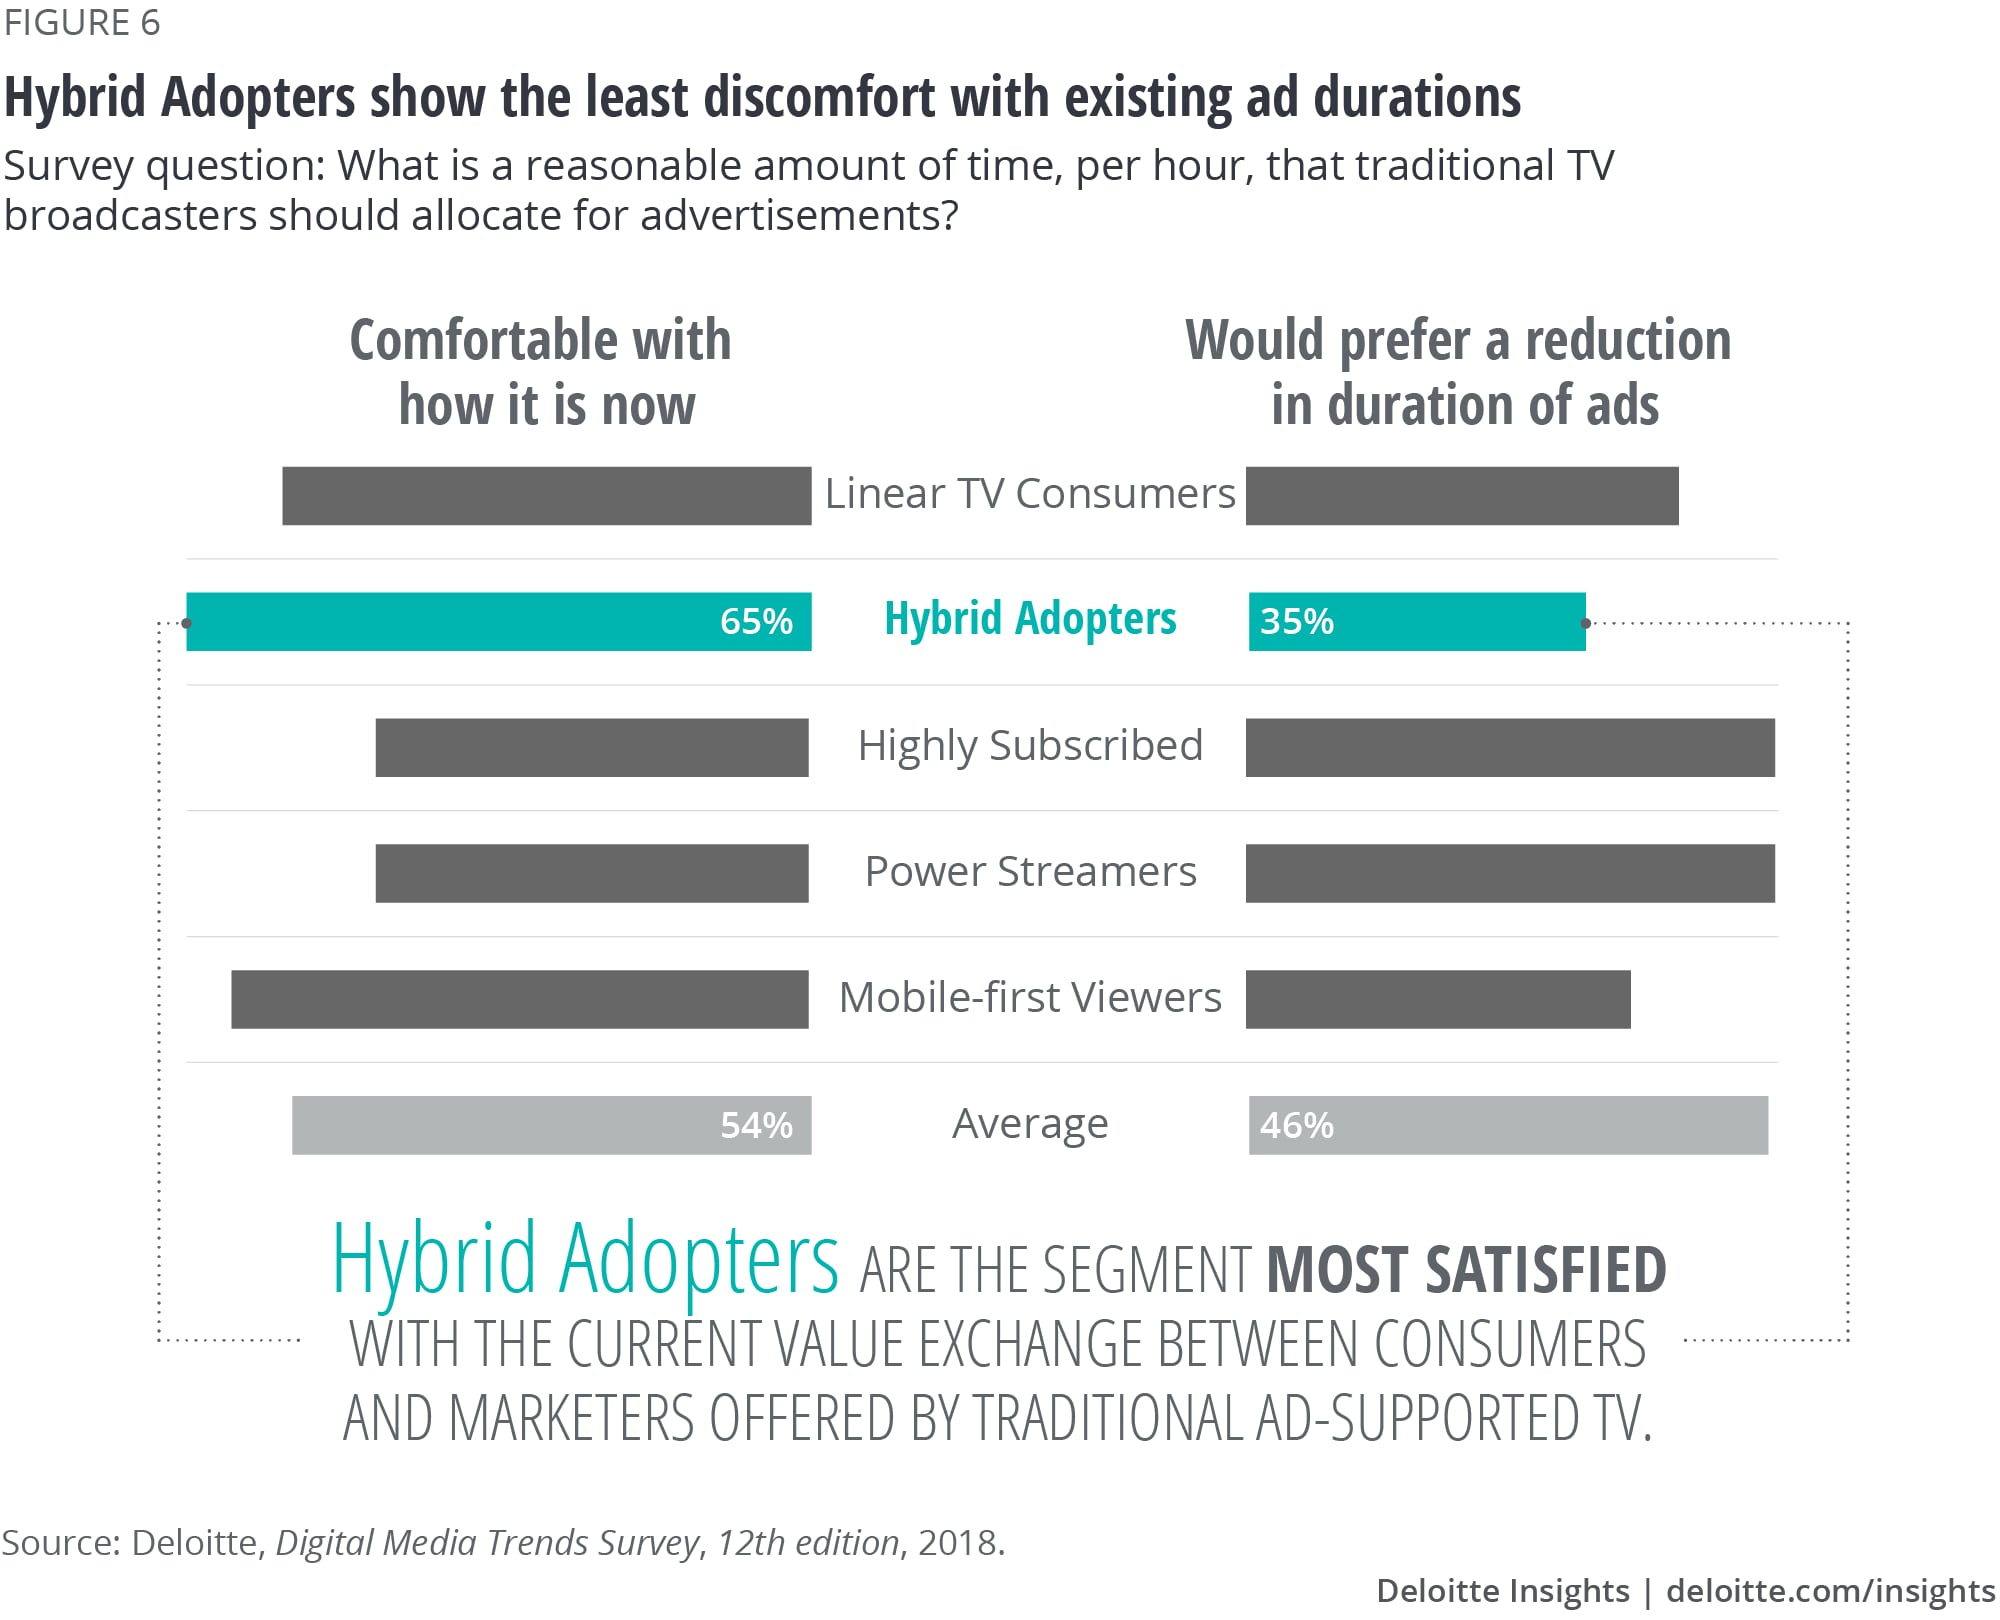 Hybrid Adopters show the least discomfort with existing ad durations